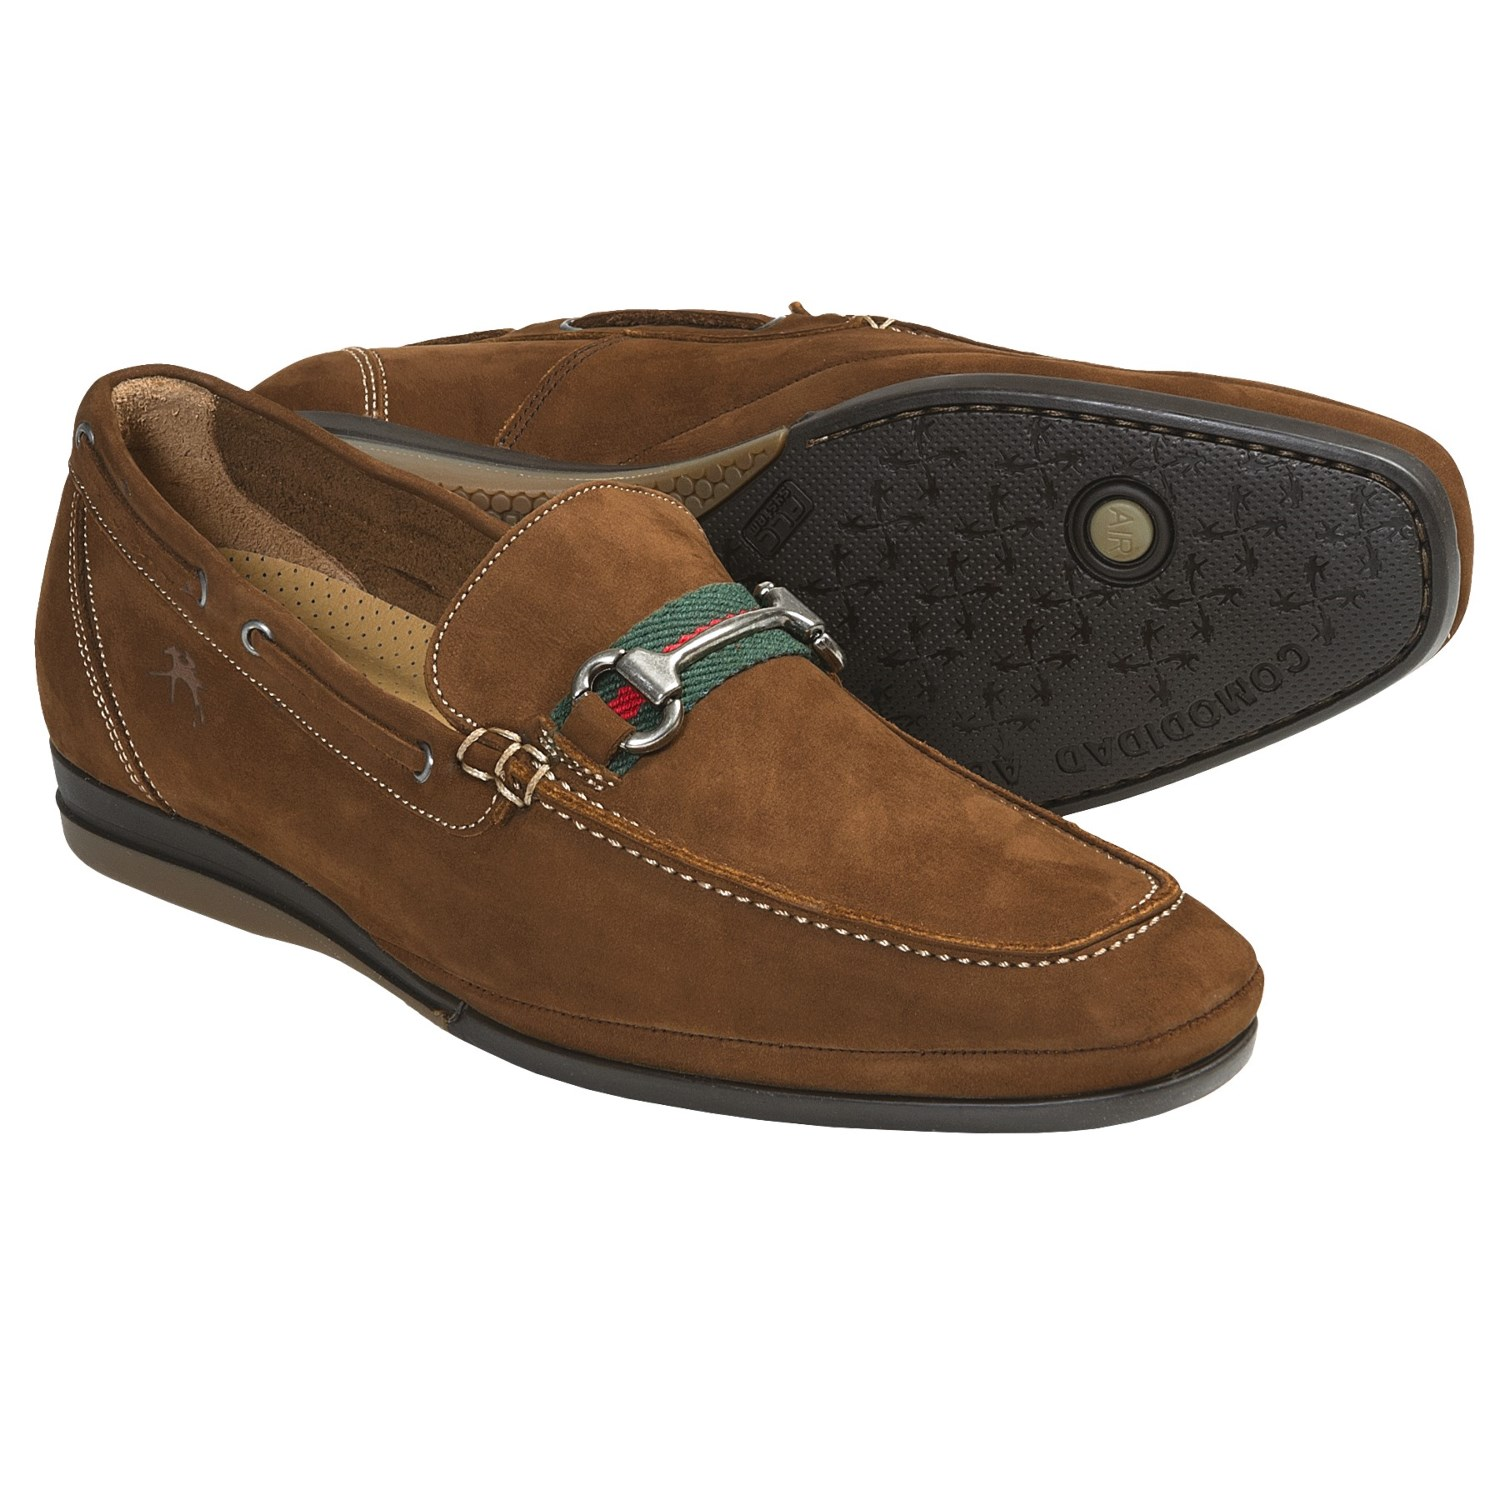 fluchos kubica leather loafer shoes for save 38